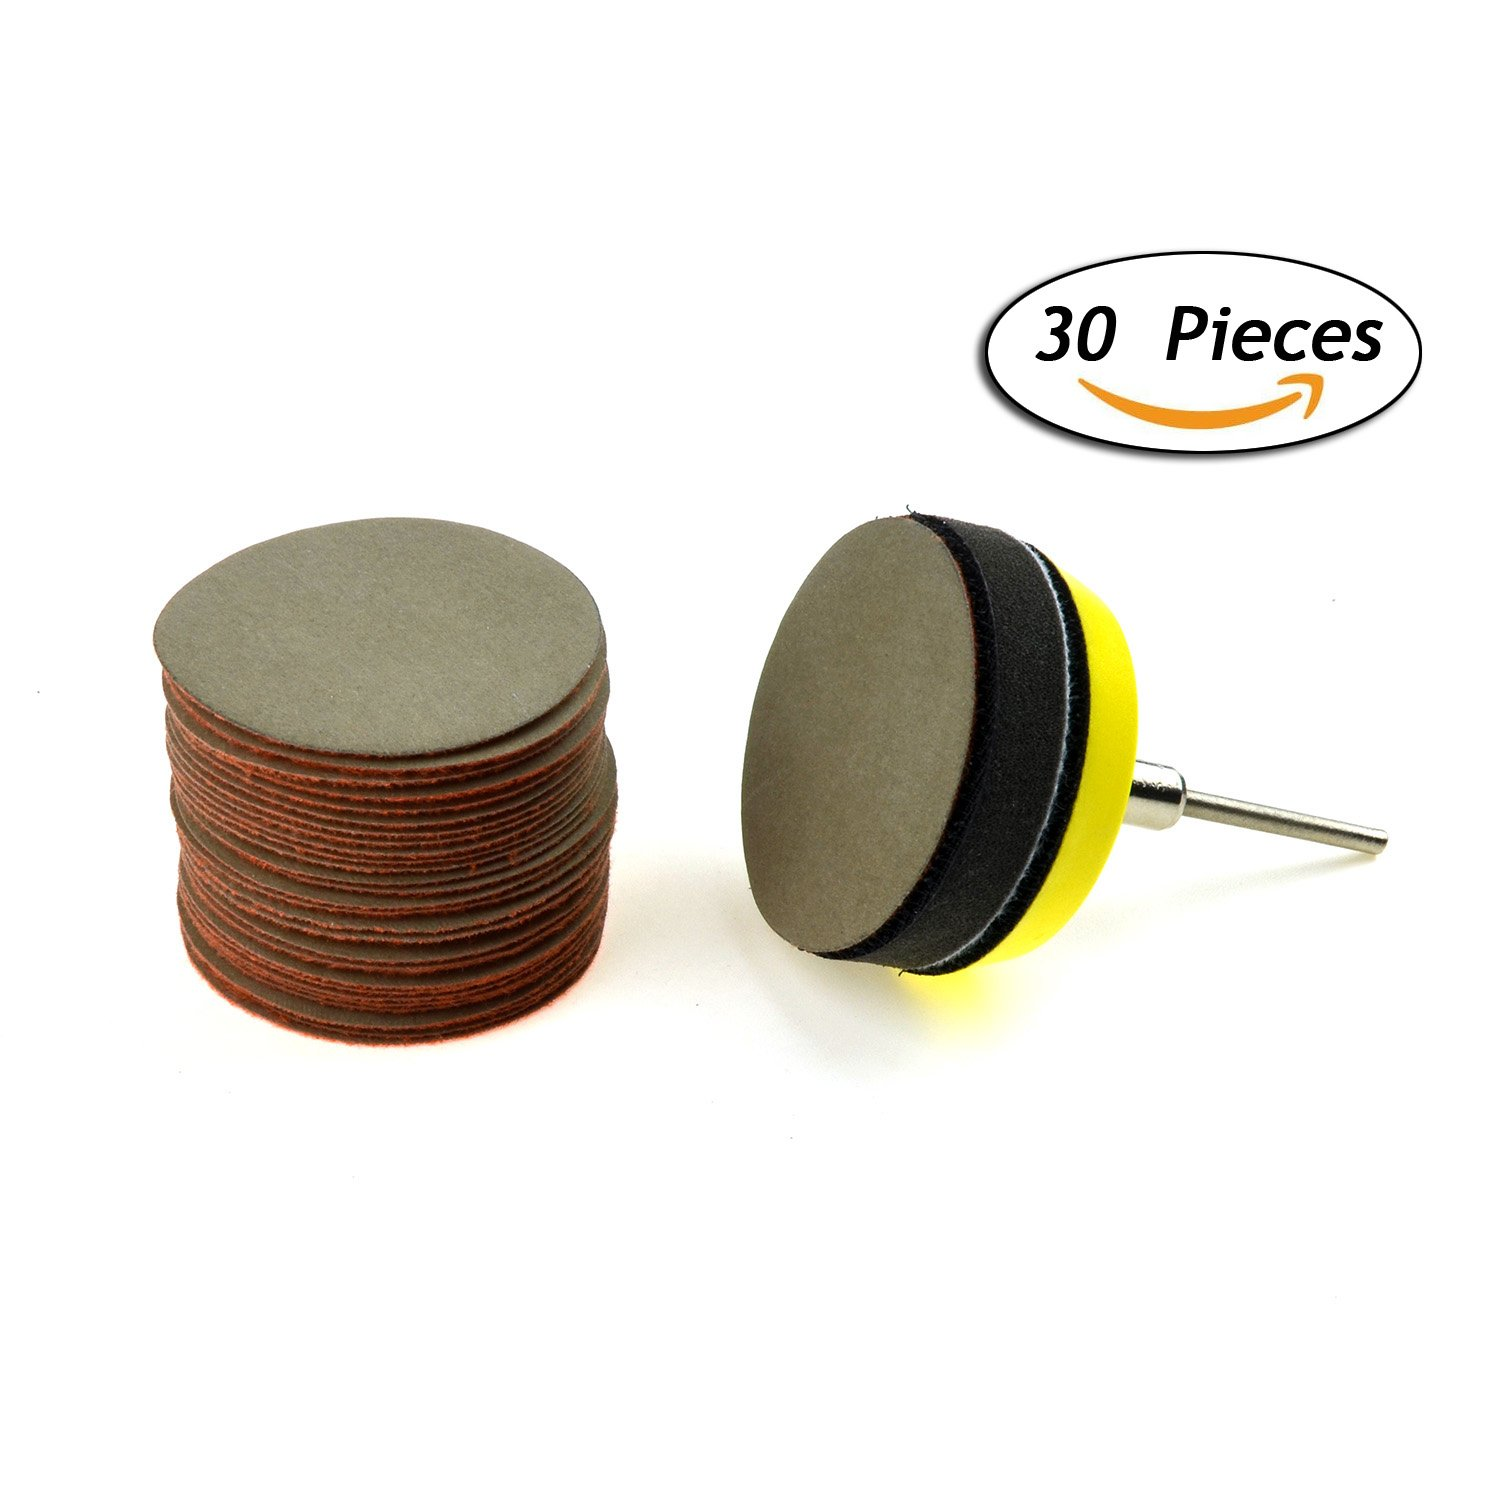 2 inches 10000 Grit Aluminum Oxide Super Fine Wet/dry(Waterproof) Hook and Loop Sanding Discs with a 1/8 inch Shank Backing Pad + Soft Foam Buffering Pad, 30-Pack